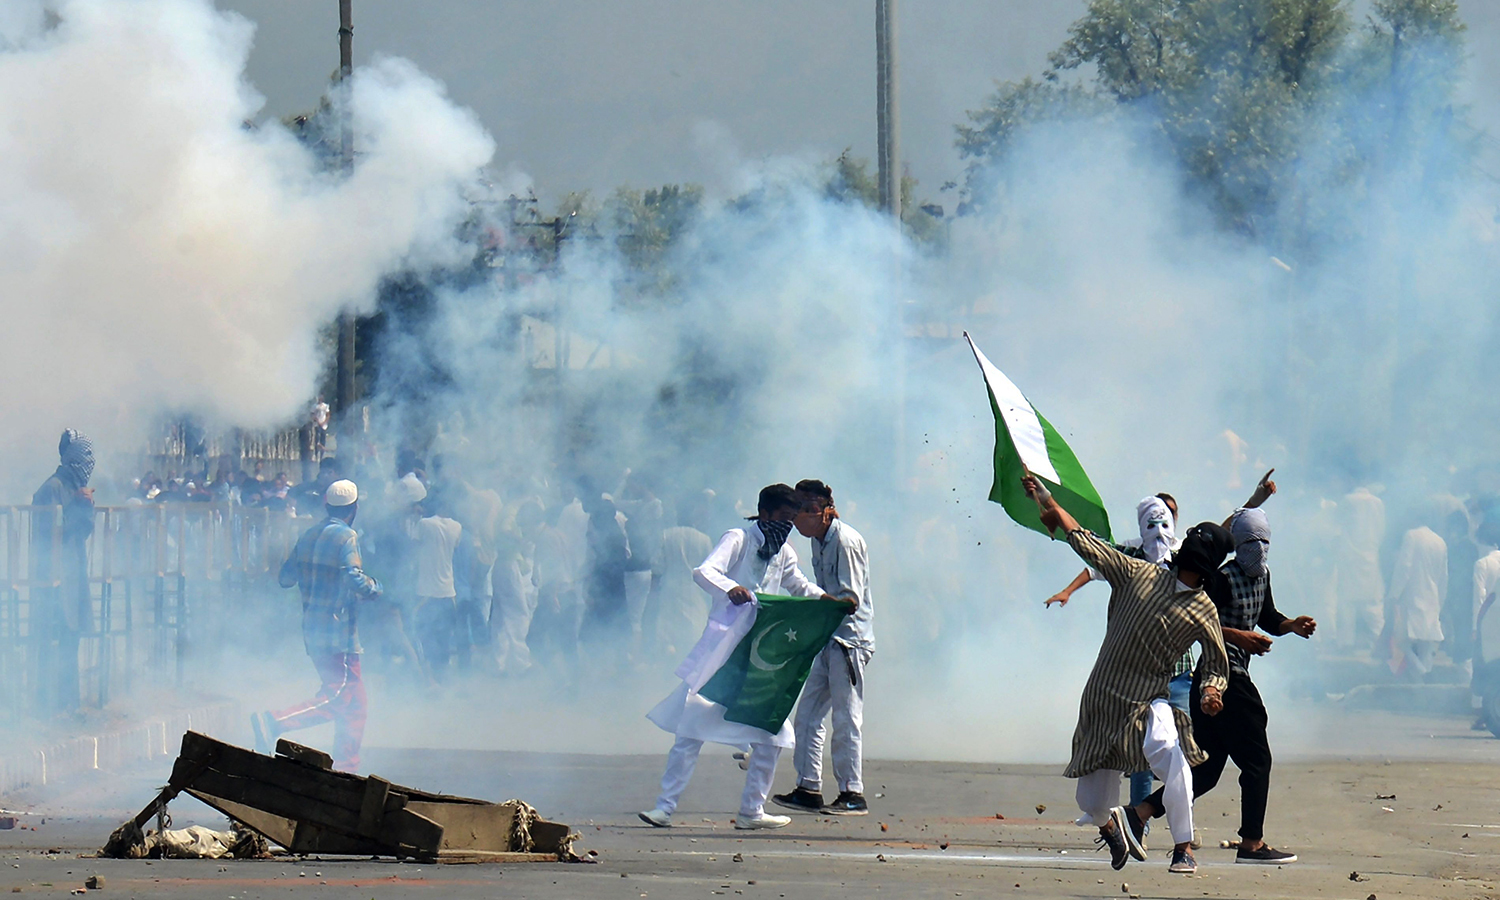 Kashmiri protesters clash with Indian police as they took to the streets chanting pro-freedom slogans after prayers marking the festival of Eidul Fitr in Srinagar. — AFP